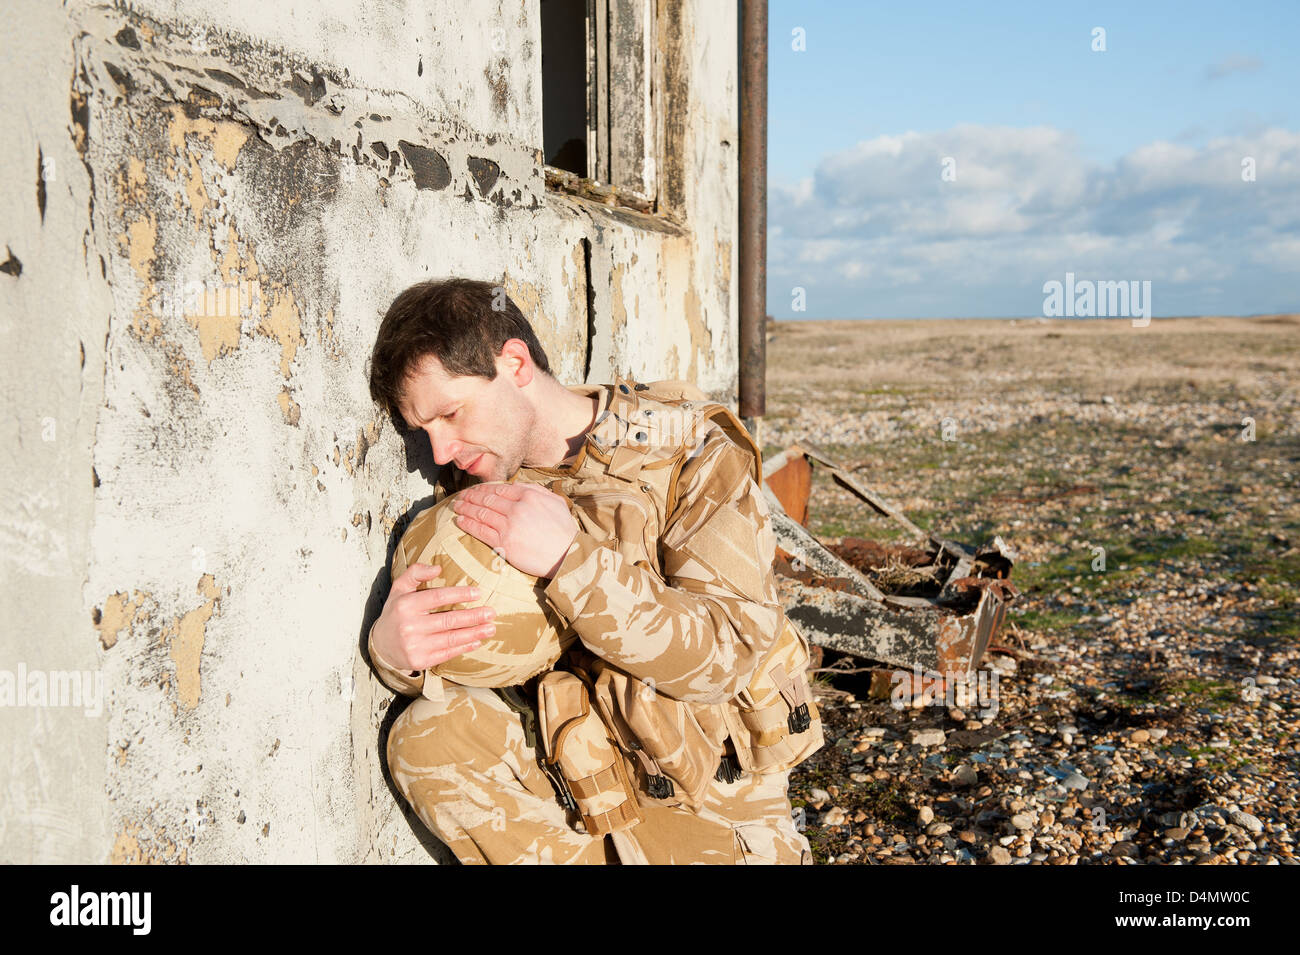 todays soldier post traumatic stress disorder essay Post traumatic stress disorder (ptsd) is a particularly disturbing and disabling illness which can be caused by exposure to any event which is.